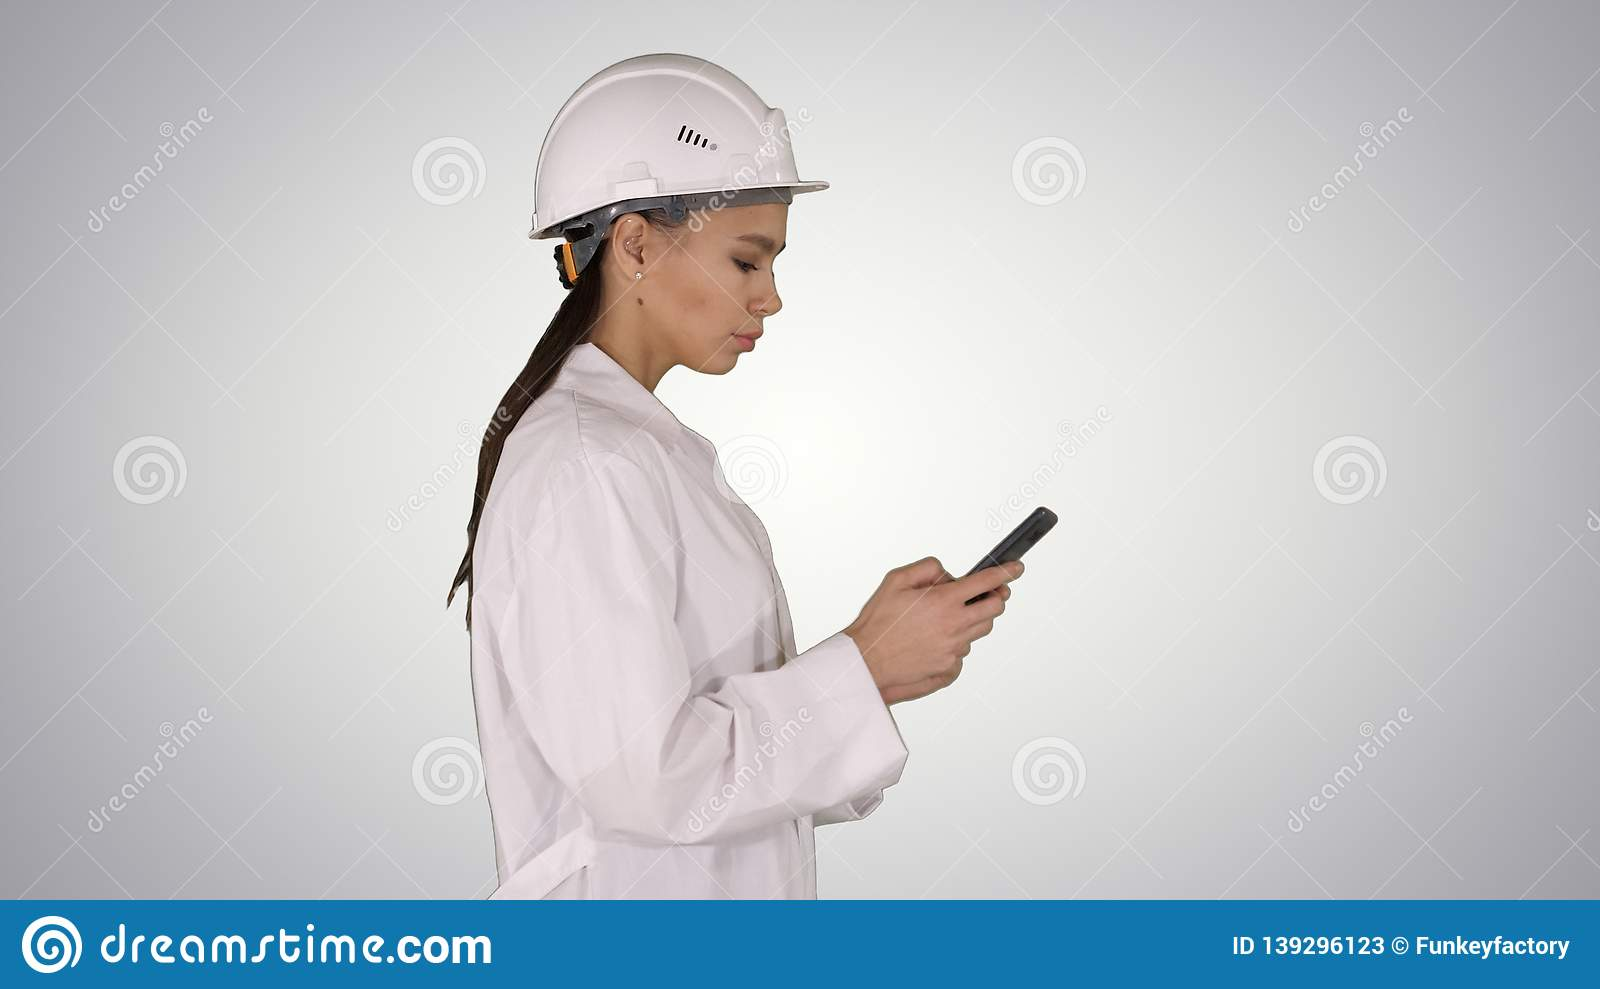 Engineer using mobile phone texting while walking on gradient background.